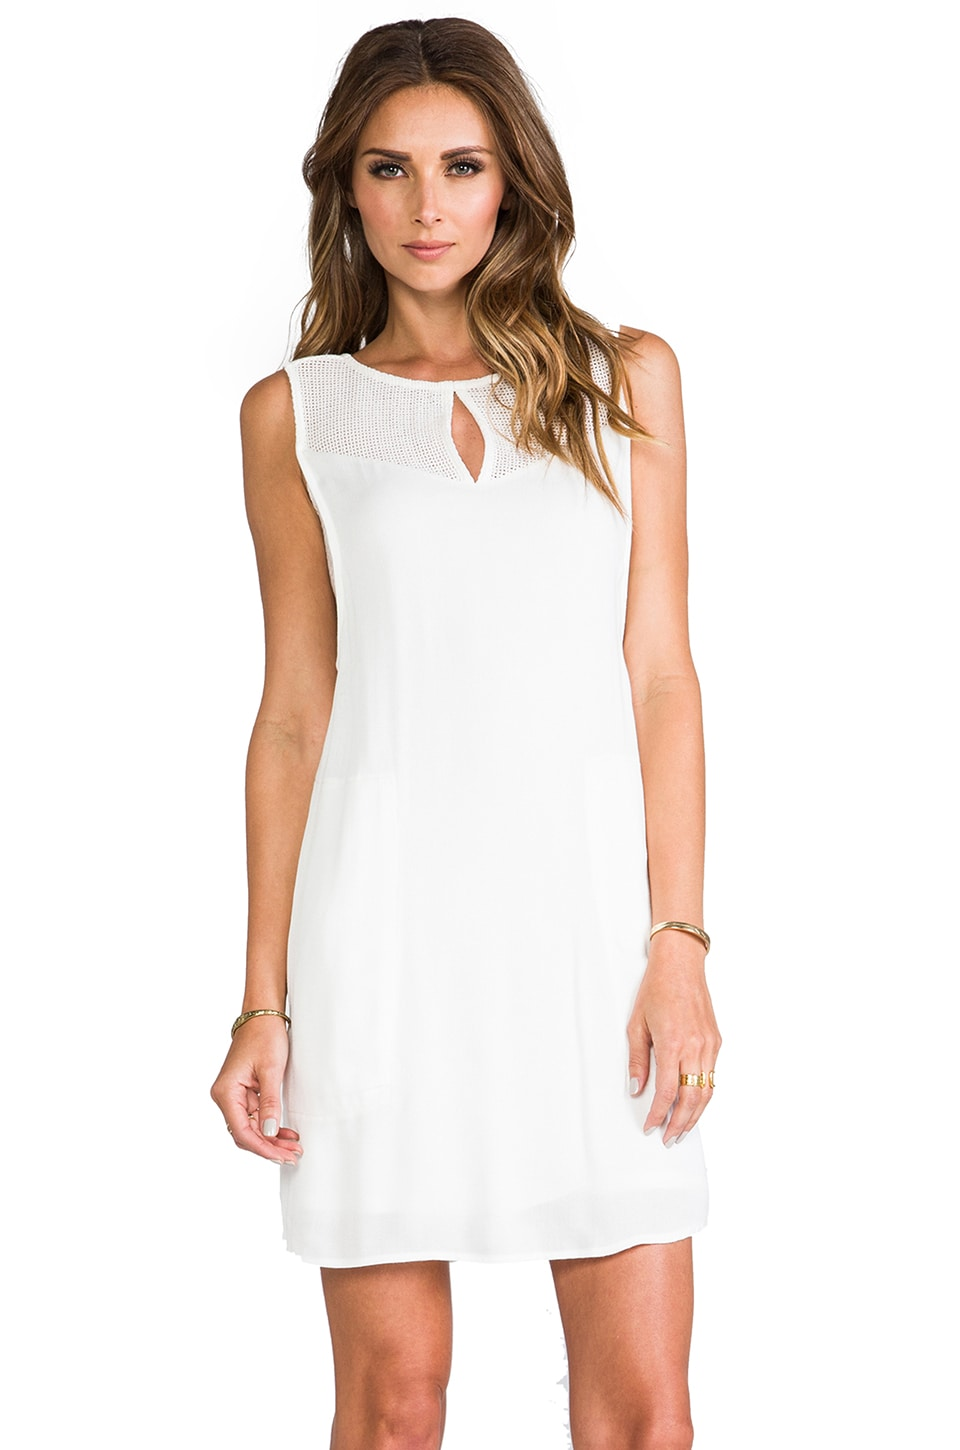 Ella Moss Stella Mesh Shift Dress in White